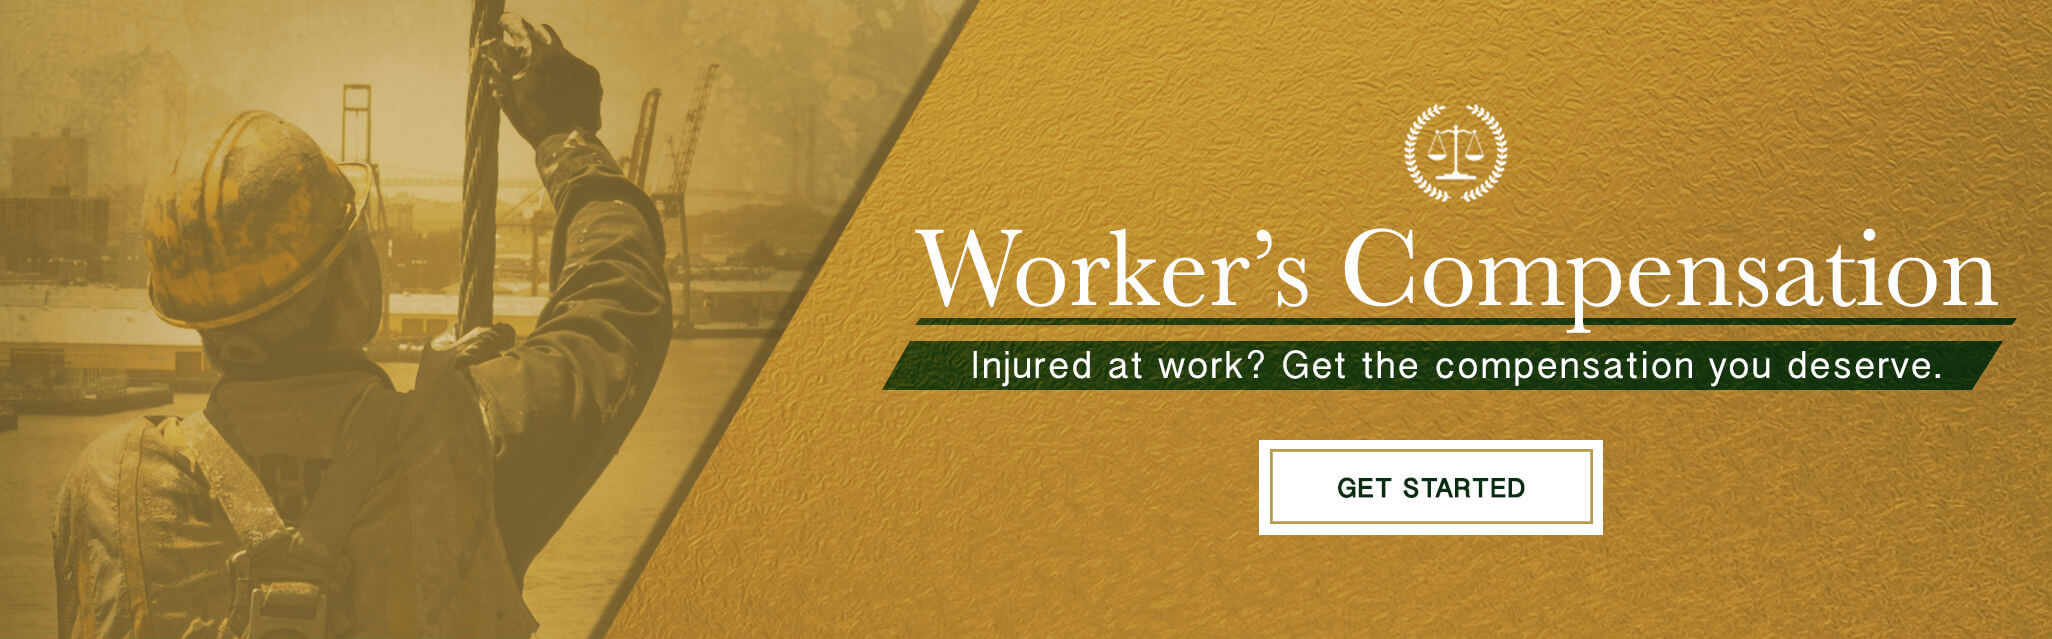 Worker injured at work.